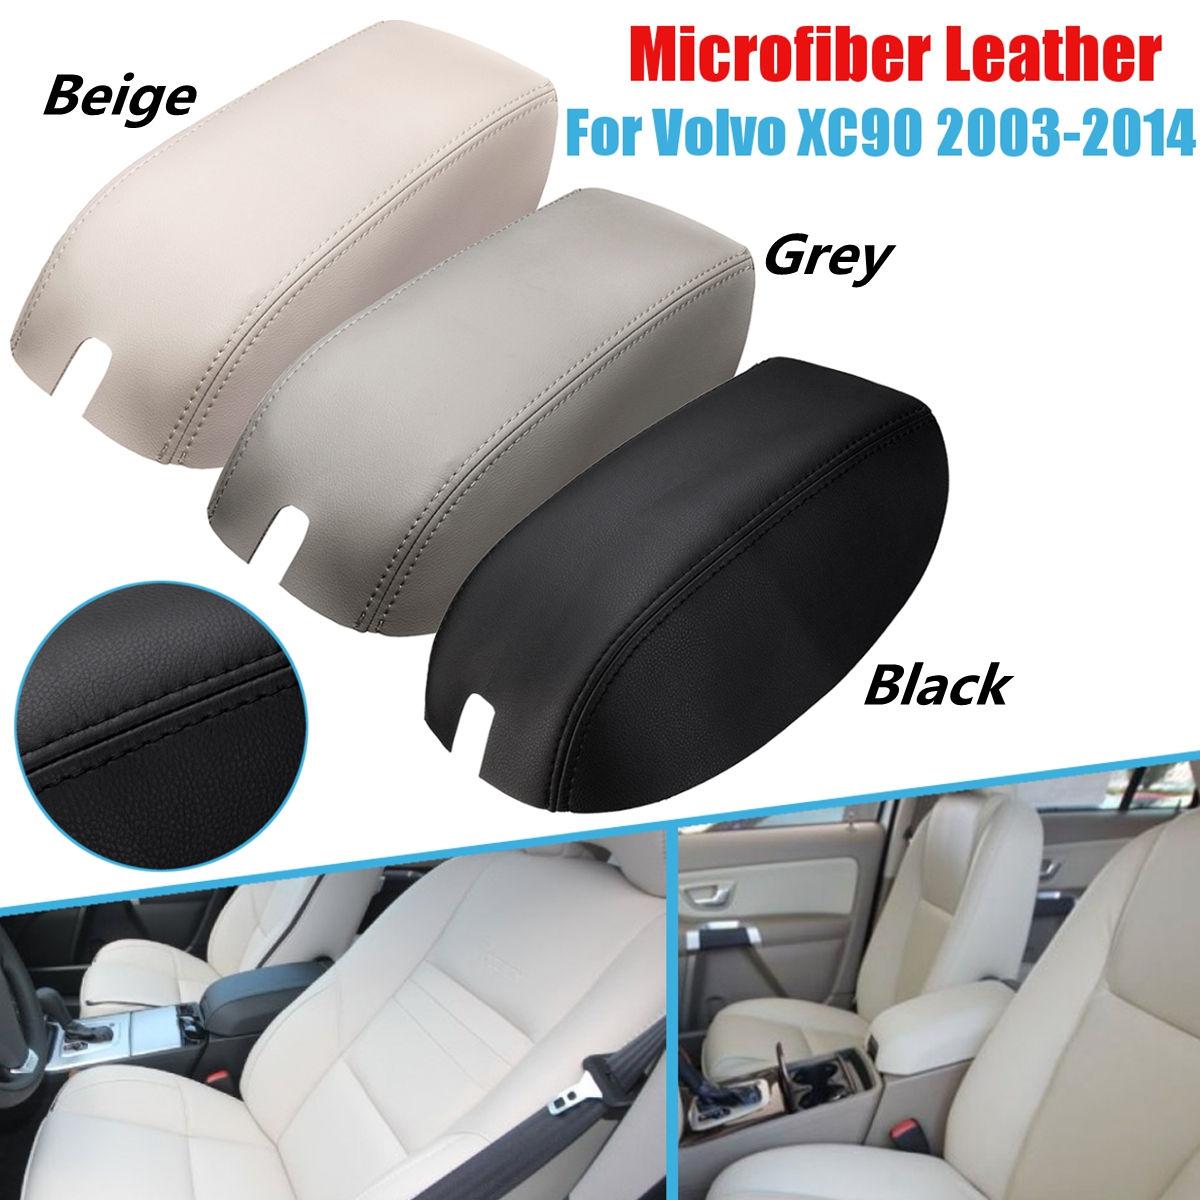 For 2003-2014 Volvo XC90 Leather Center Console Lid Armrest Cover Skin Beige